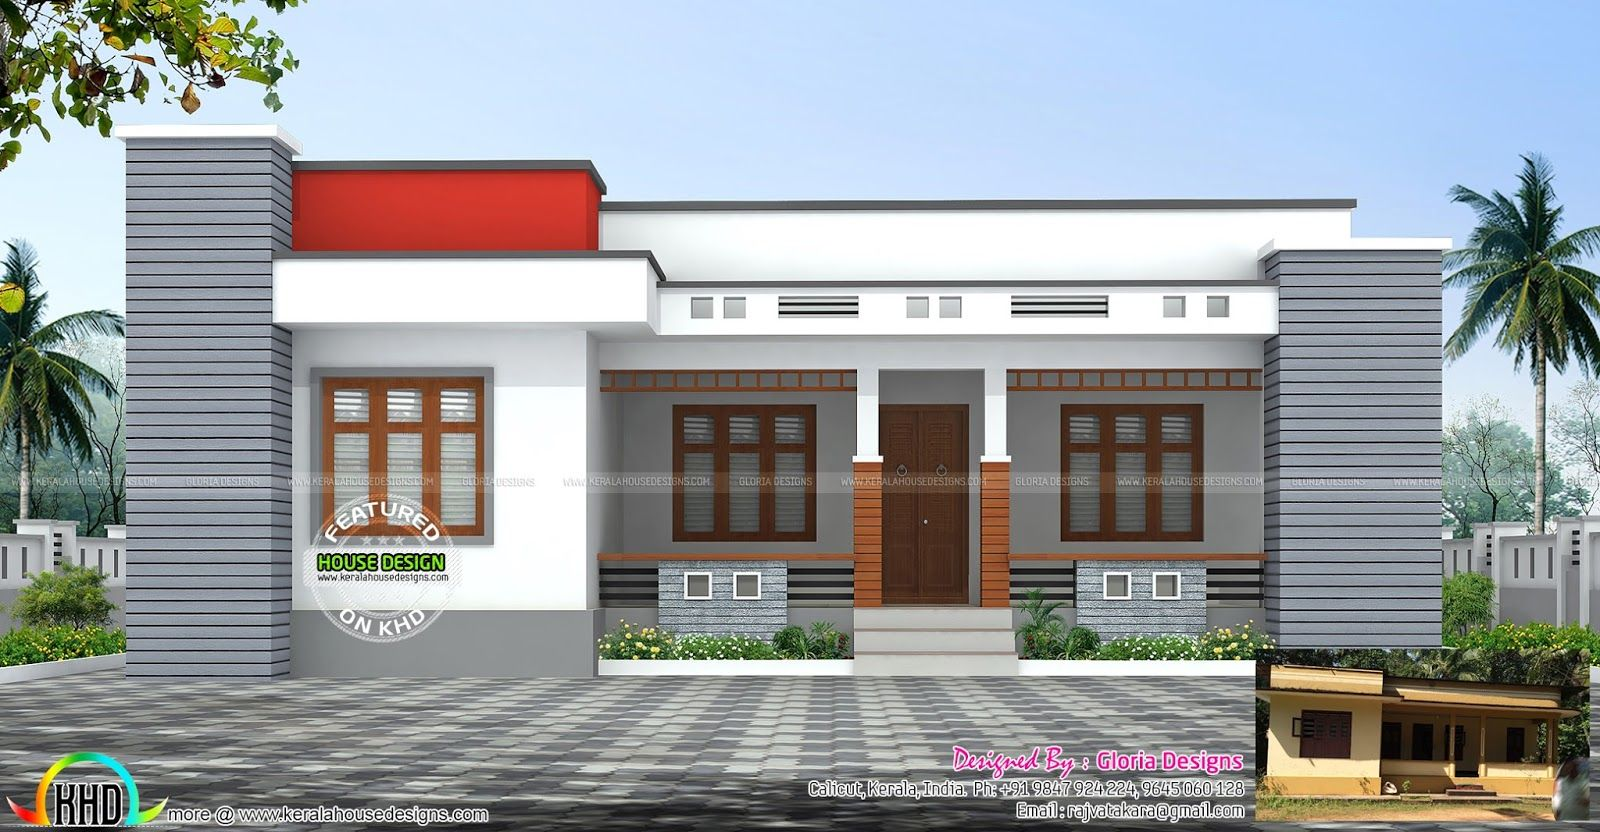 Check The Photos Of Some 35 Most Affordable And Simple Design That You Can Pattern Your Dream House I Kerala House Design House Design Photos Row House Design